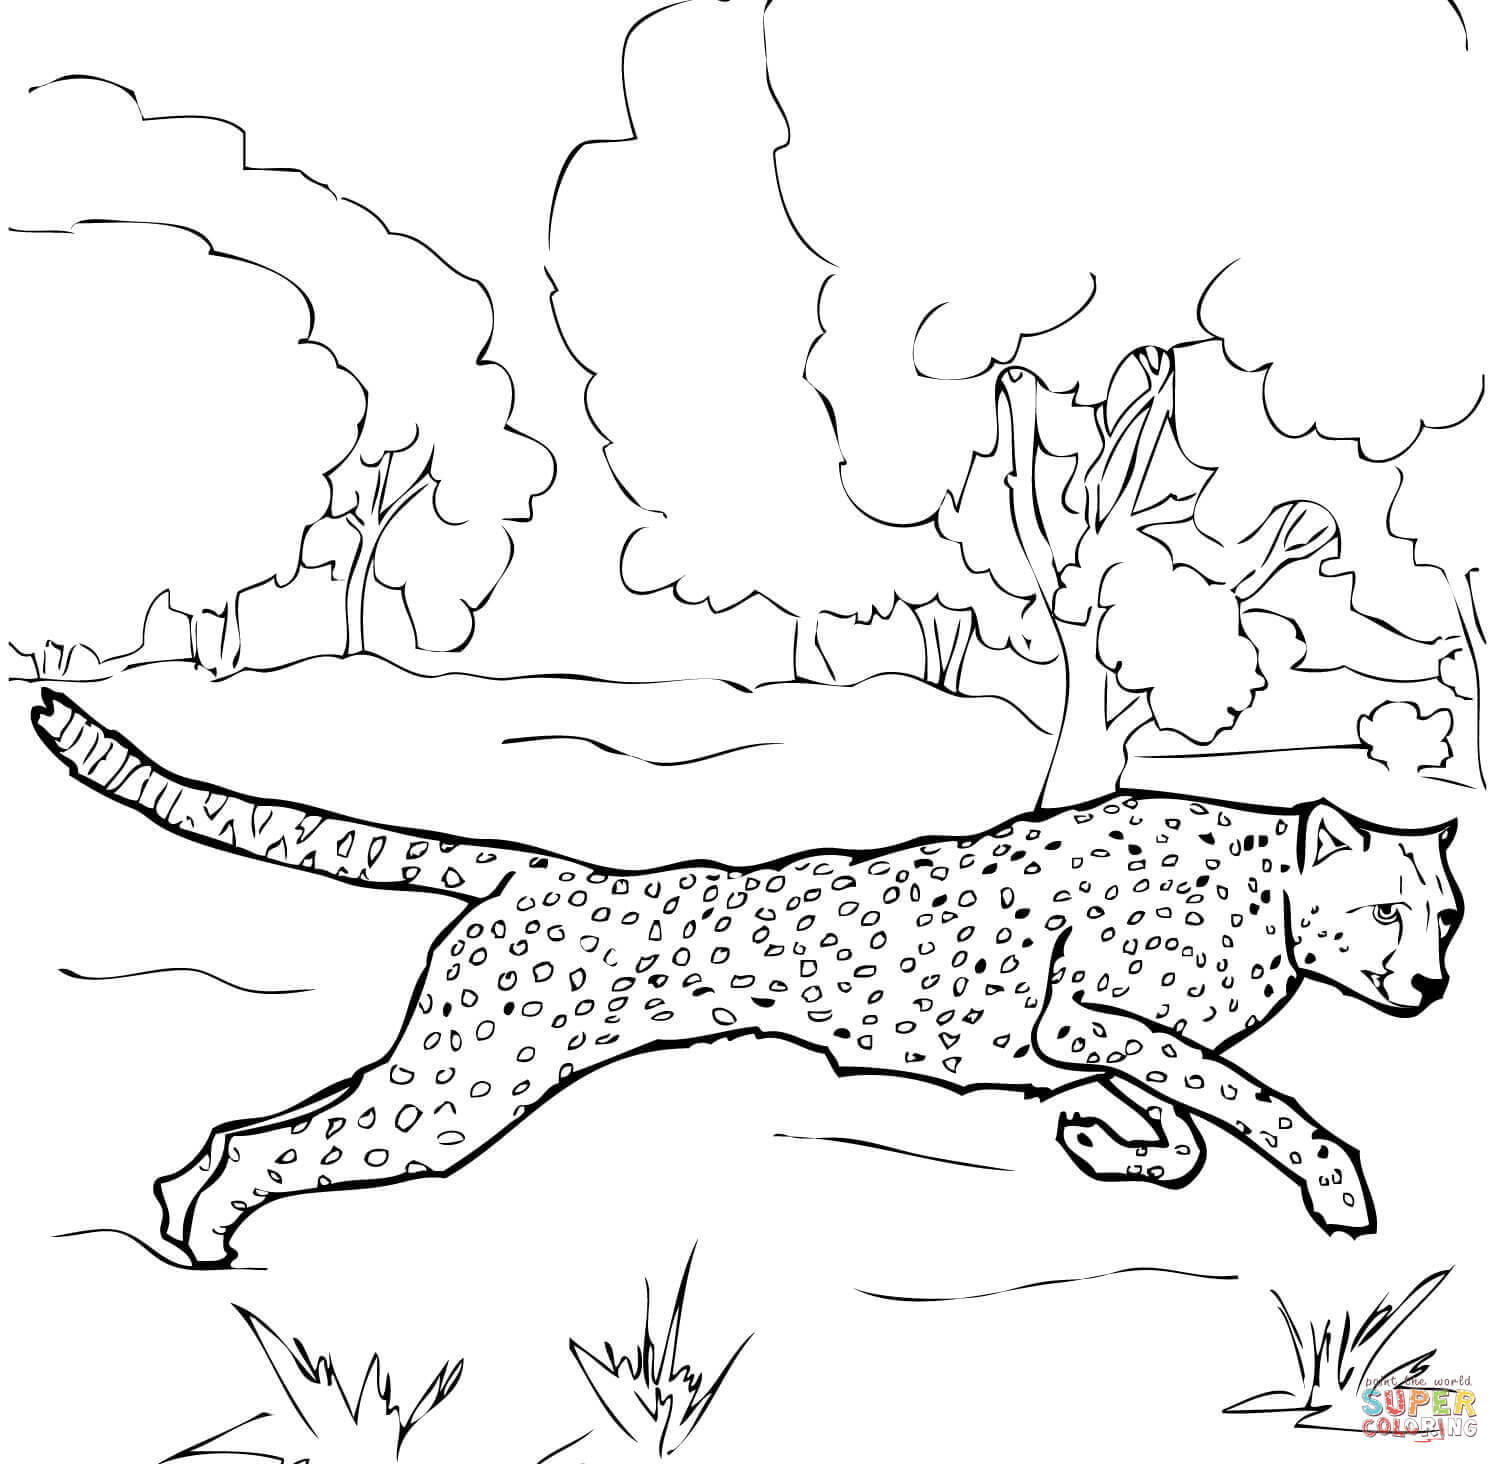 Cheetah Coloring Pages To Print Free Coloring Pages Download | Xsibe ...